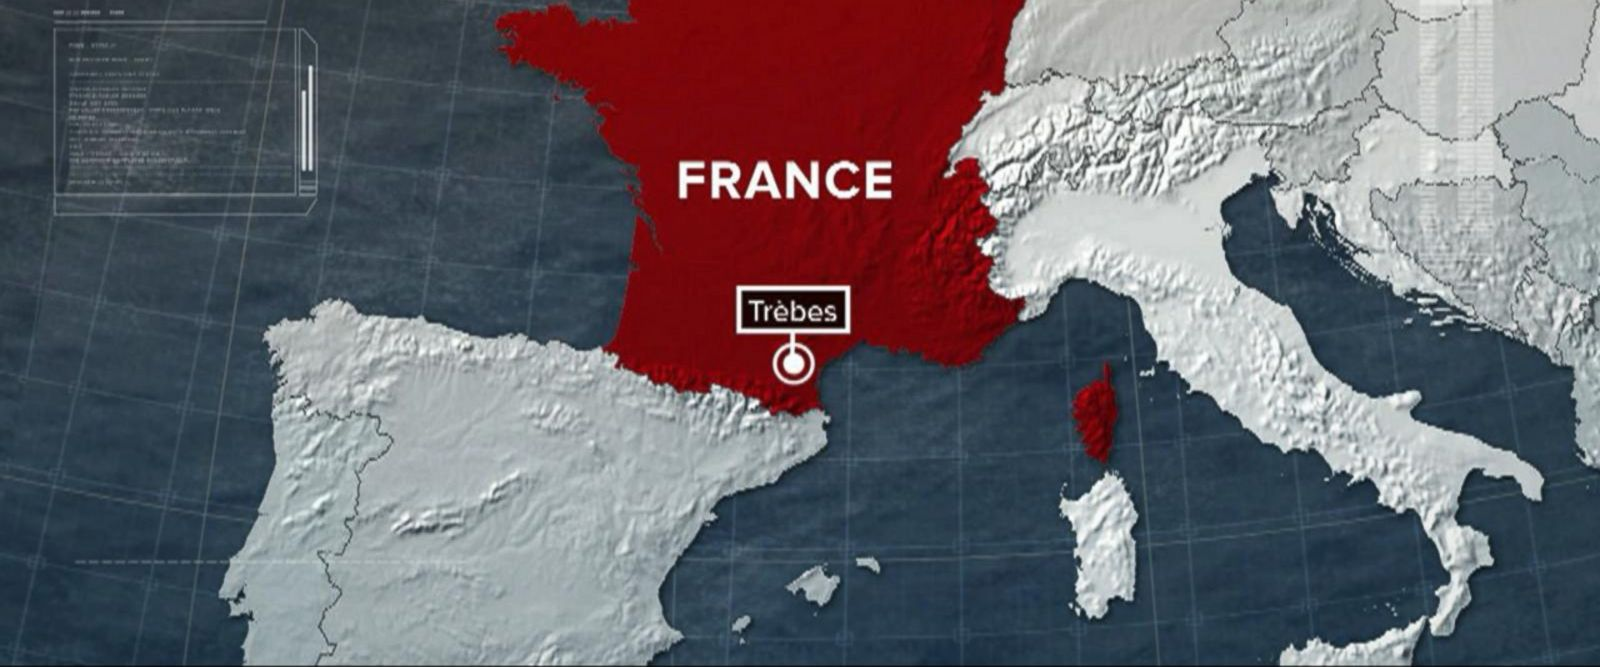 VIDEO: Reports of hostage situation in Southern France